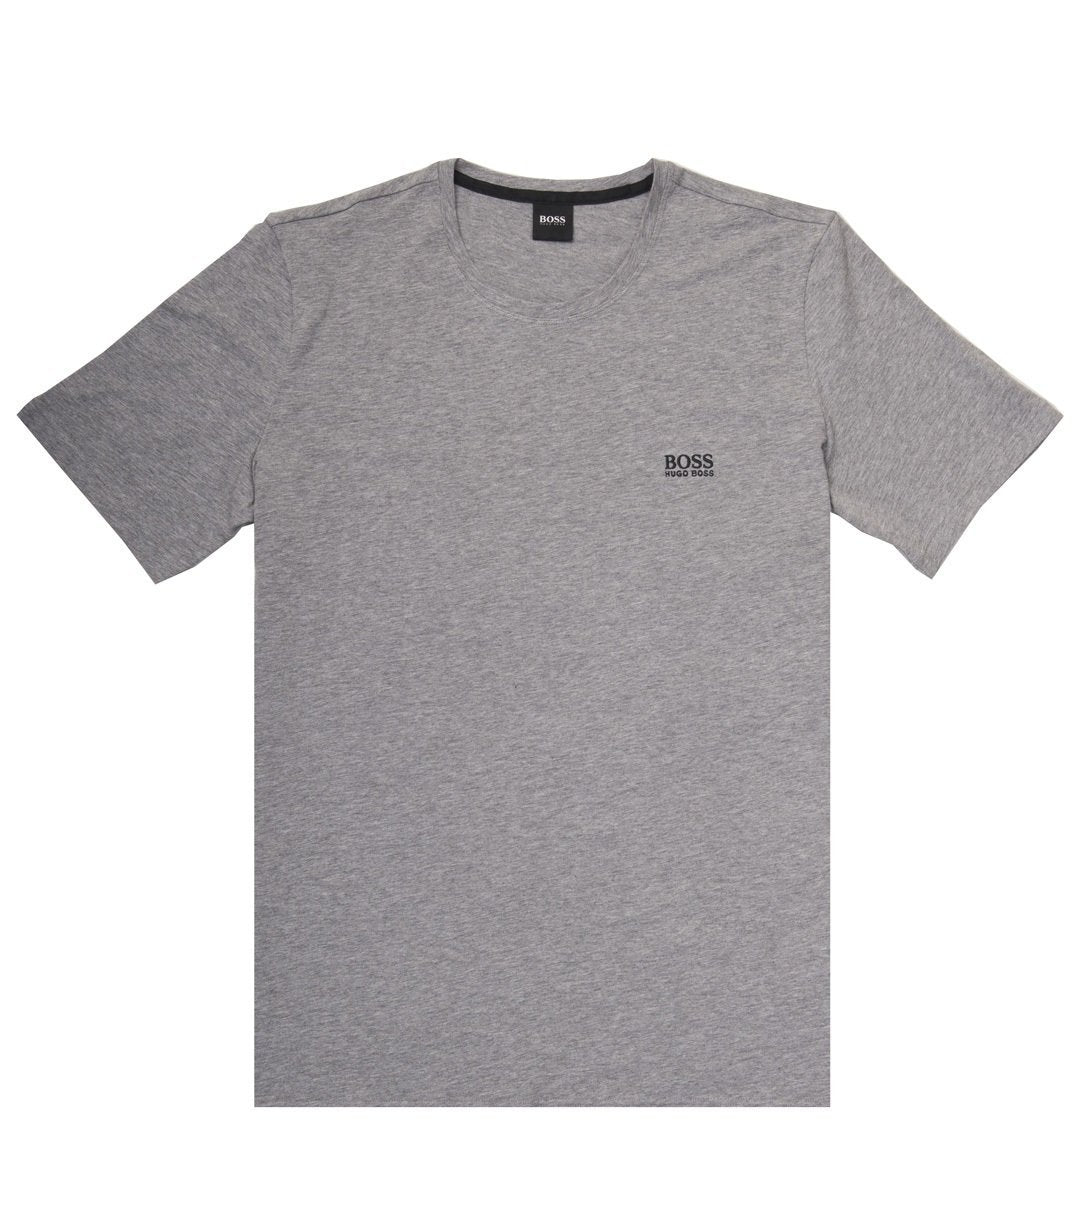 BOSS 'Mix & Match' Tee Shirt in Grey T-Shirts BOSS